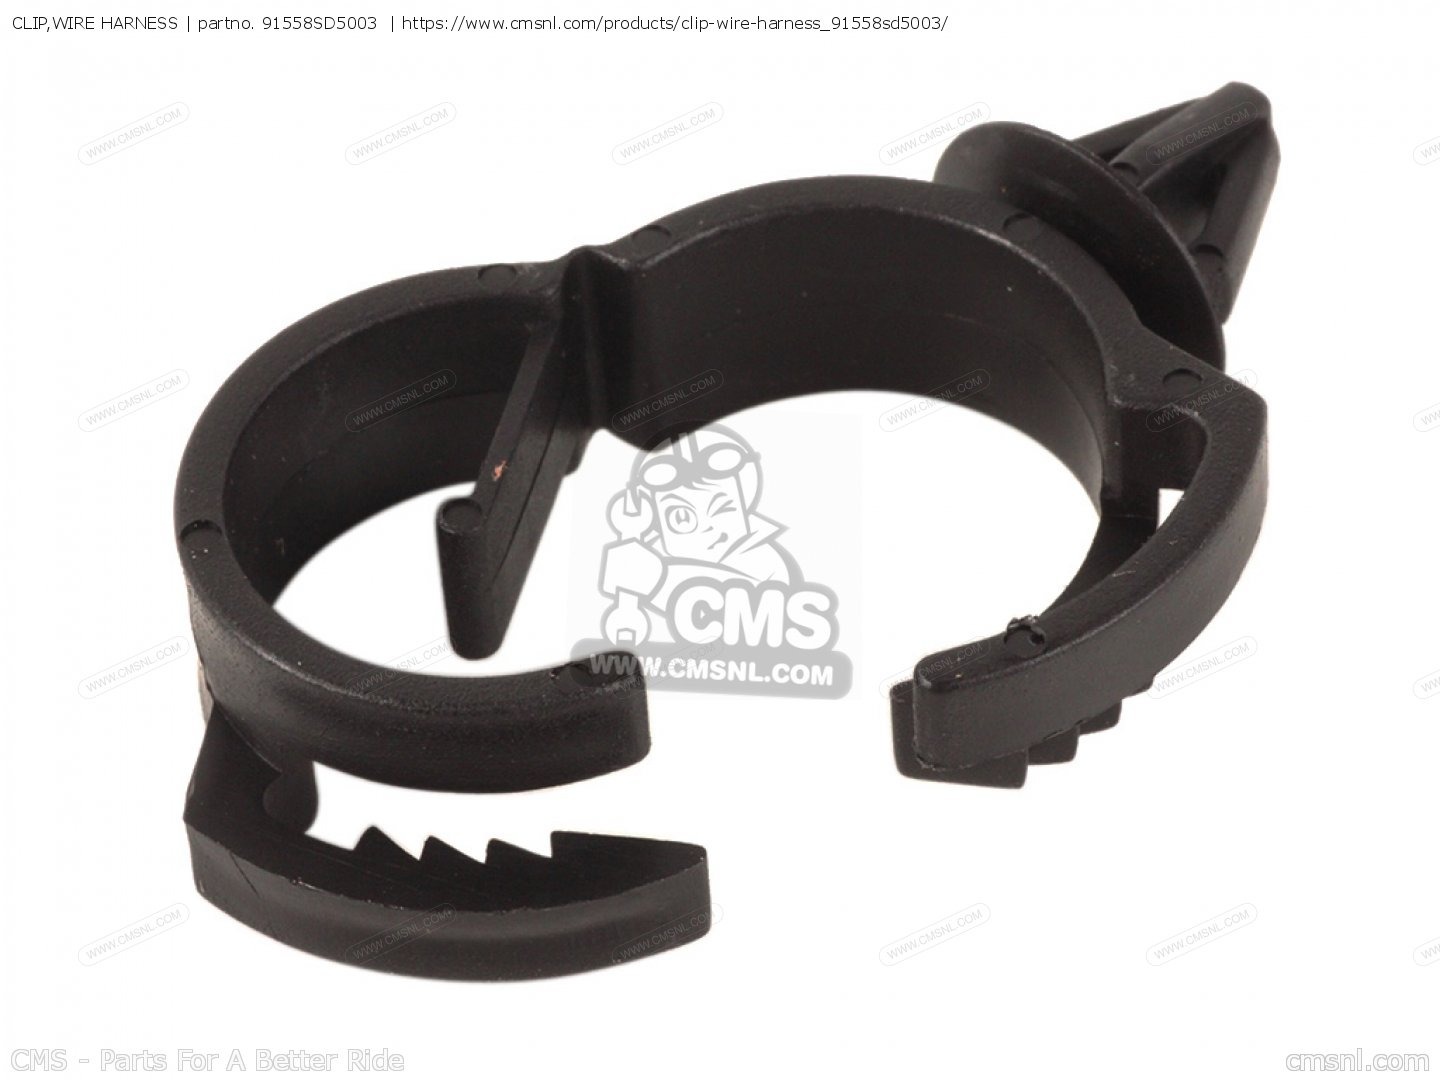 Clipwire Harness For Cbr900rr Fireblade 1995 S England Order At Off Set Wiring Clips Small Image Of Clip Wire